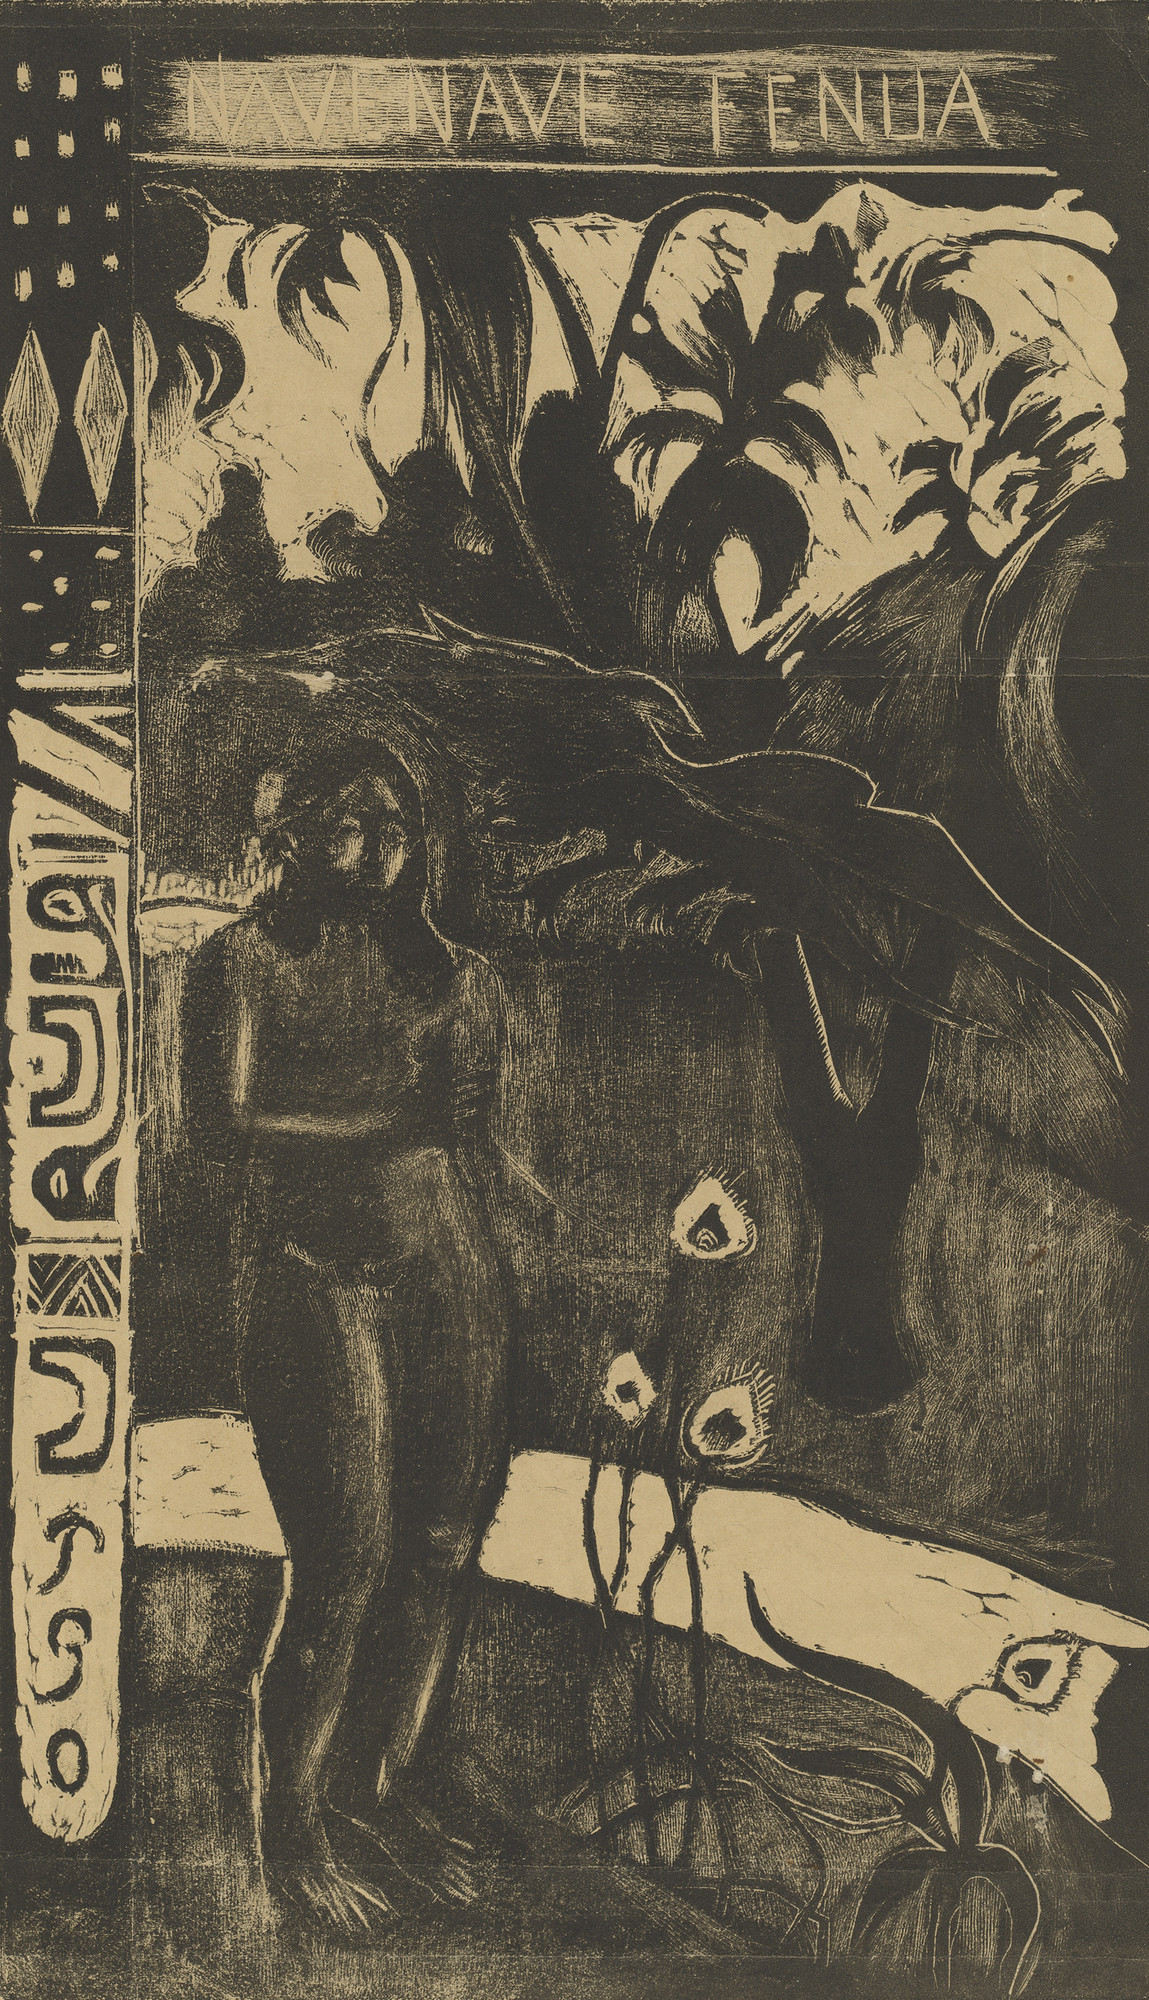 "Woodcut, comp. 14 x 8"" (35.6 x 20.3 cm). National Gallery of Art, Washington, D.C. Rosenwald Collection"